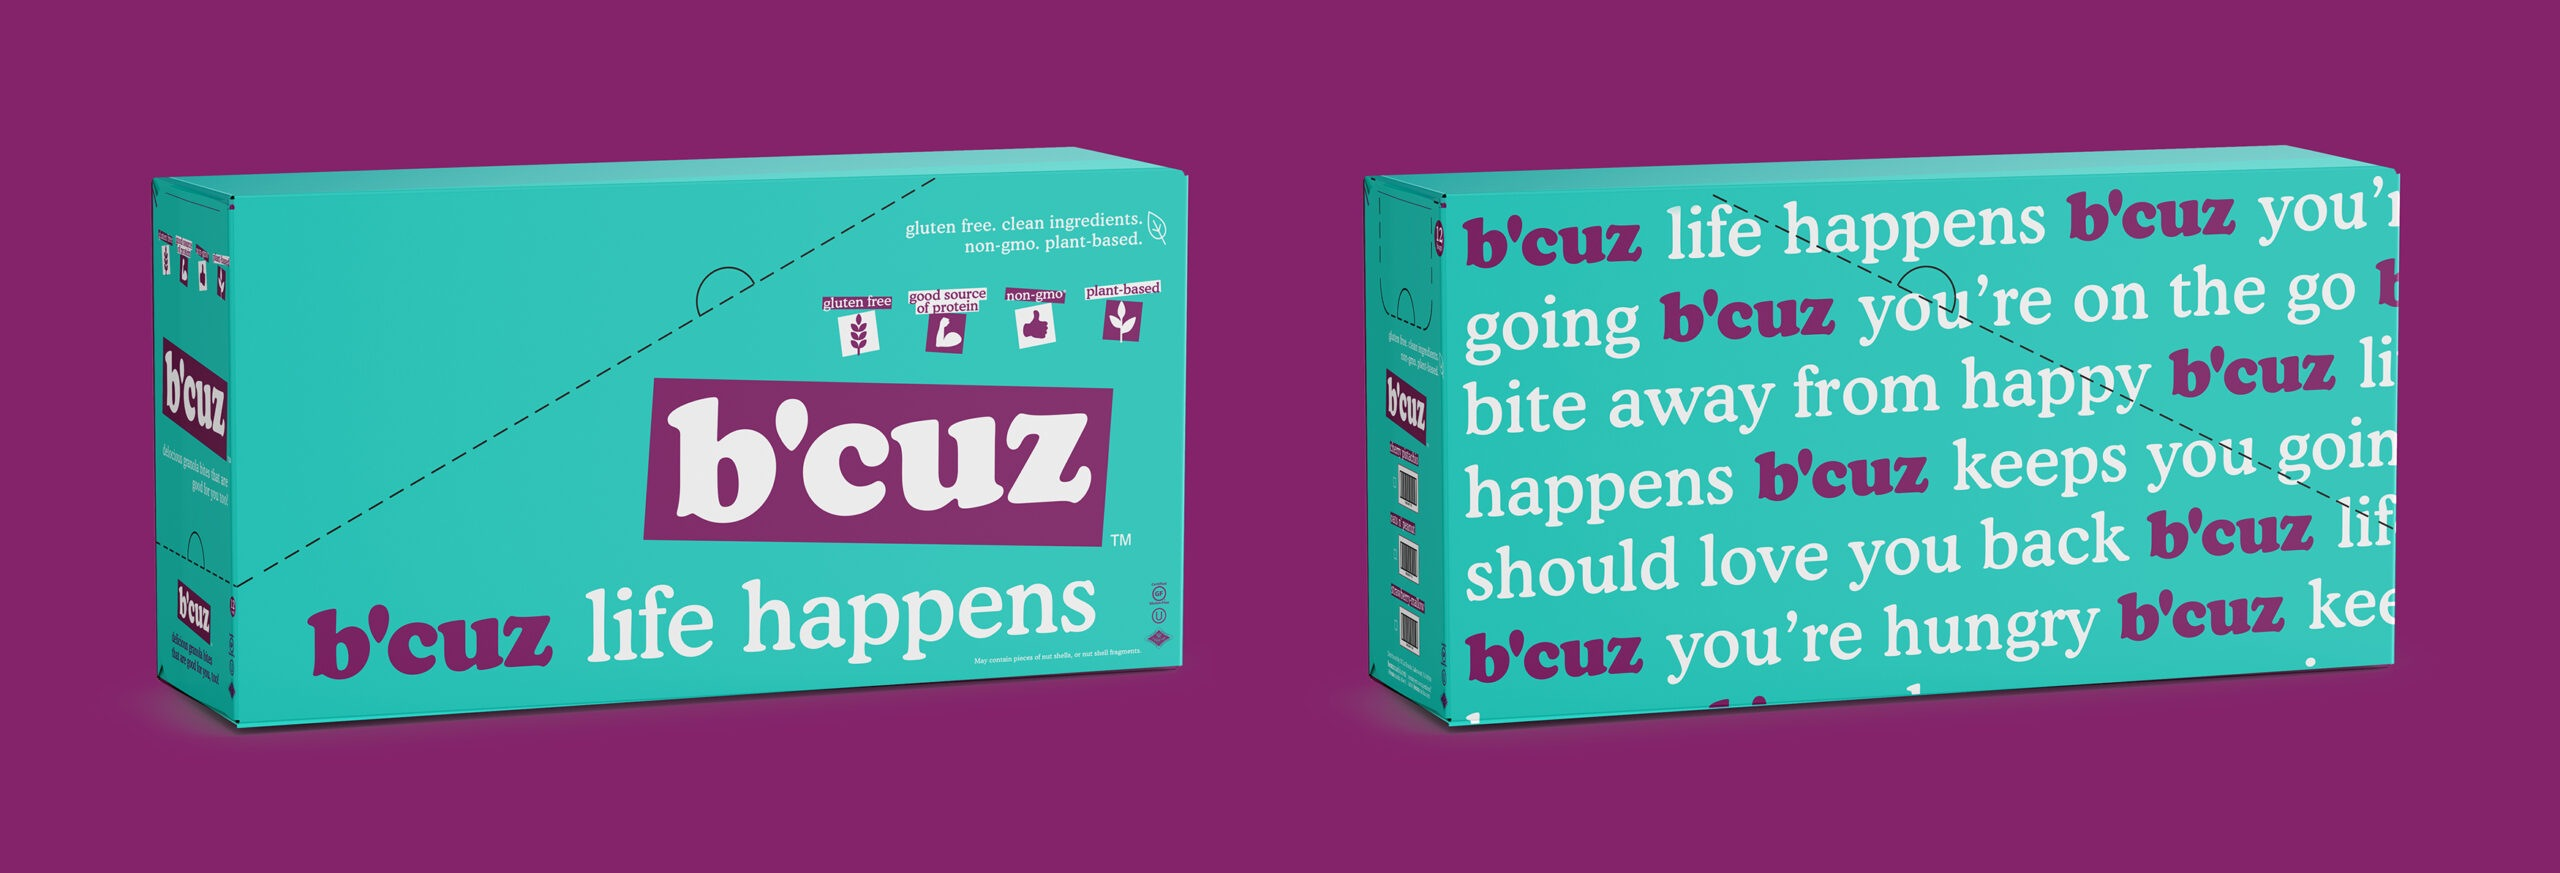 B'Cuz Branding and Packaging Granola Snacks Box